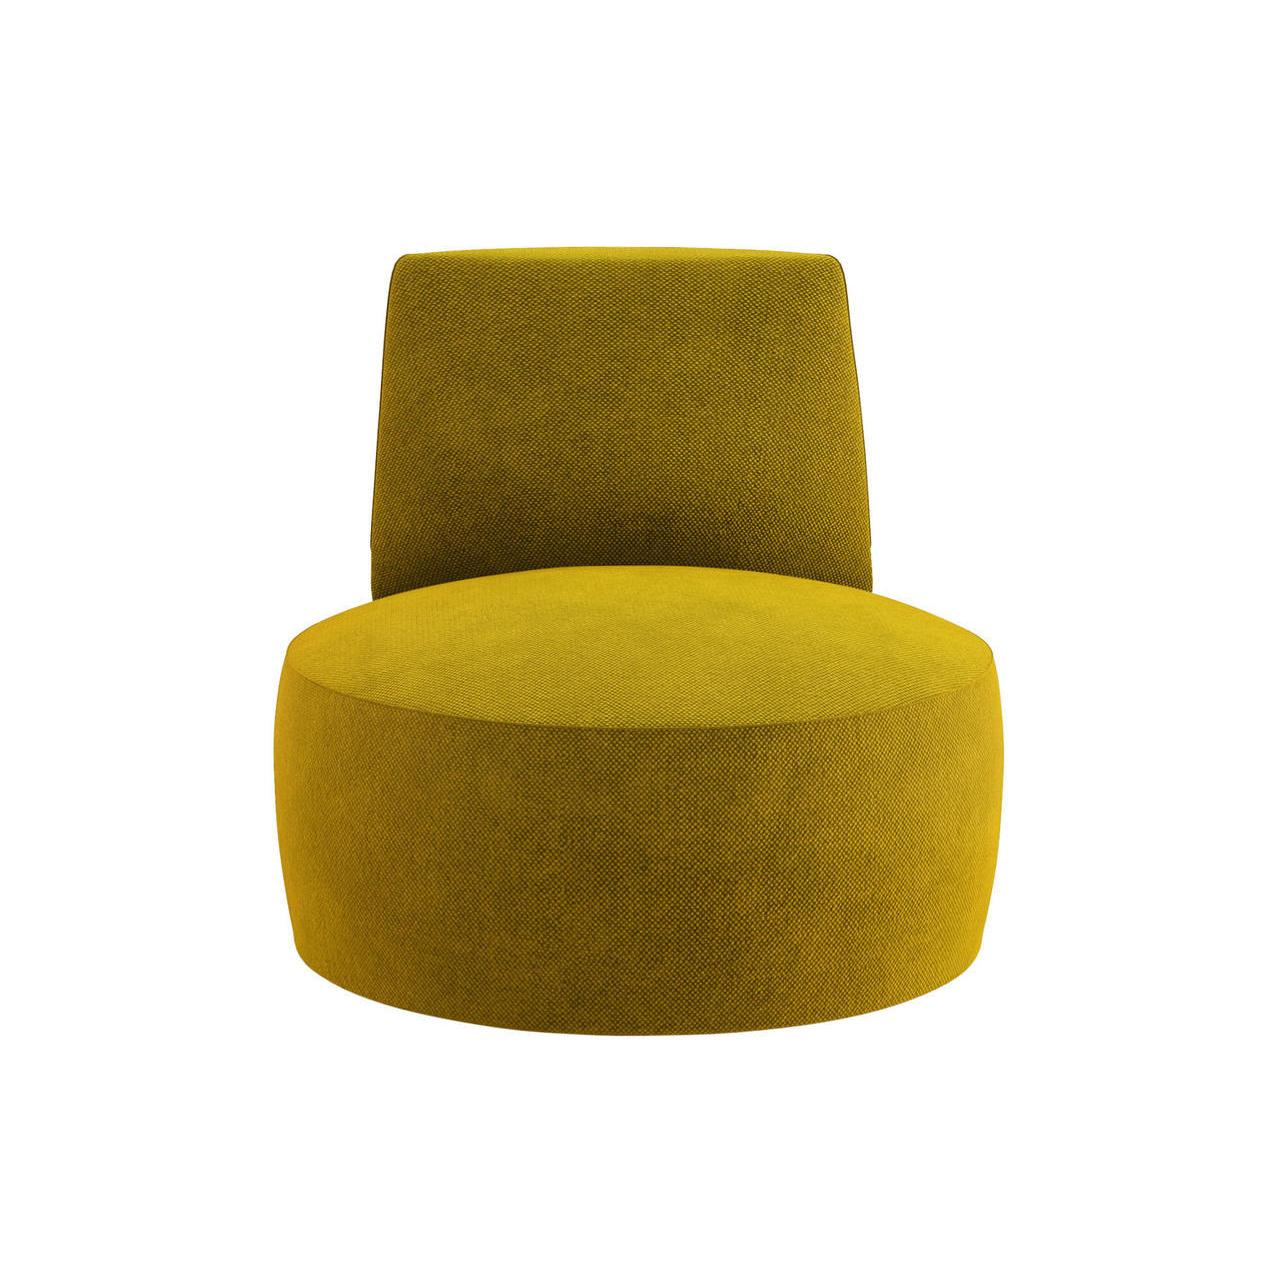 Baobab Lounge Chair